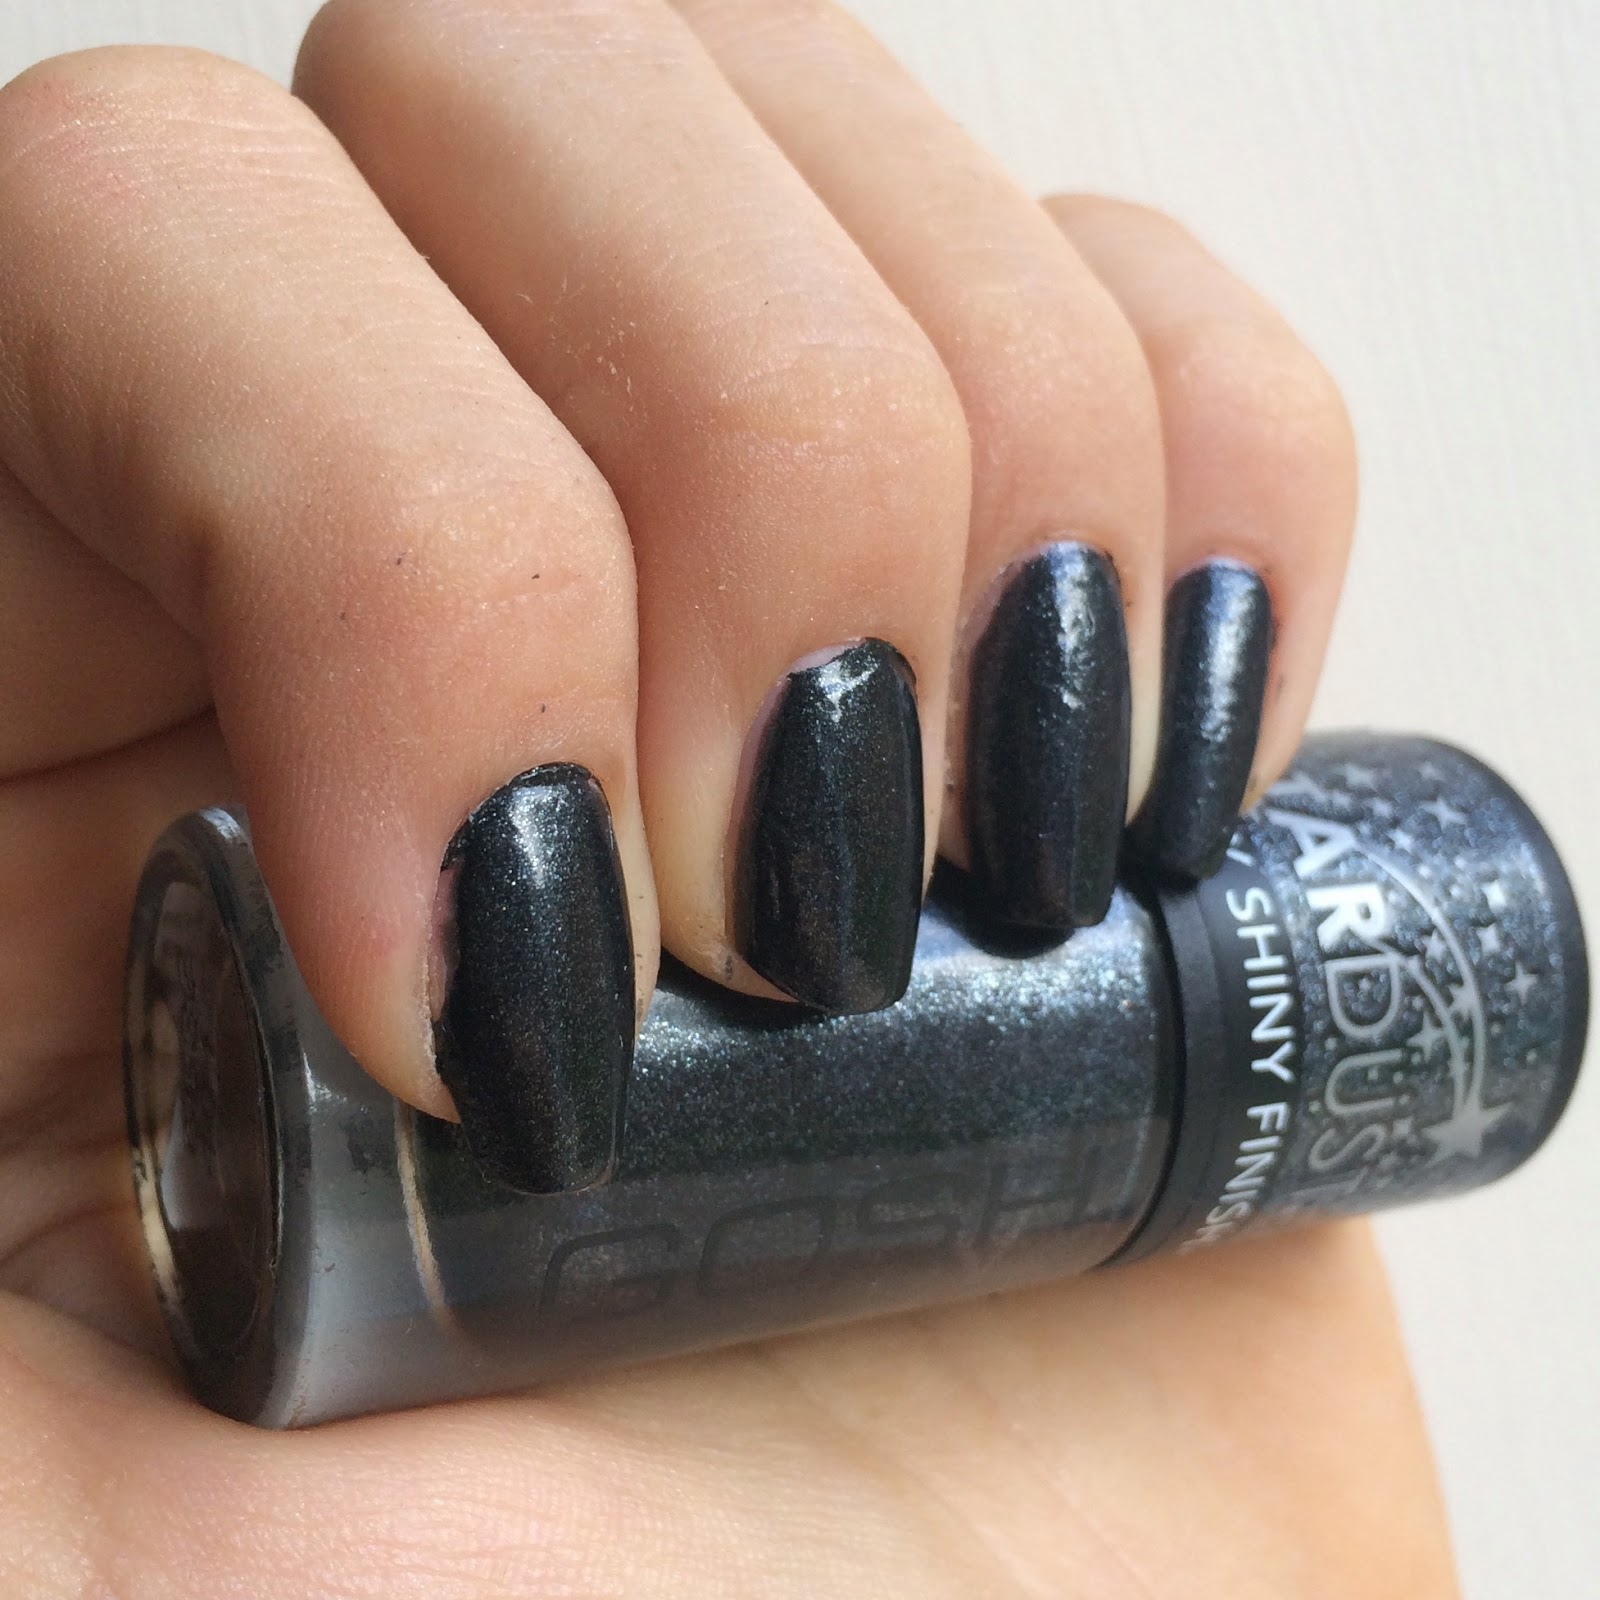 gosh-stardust-nail-lacquer-collection-2014-night-sky